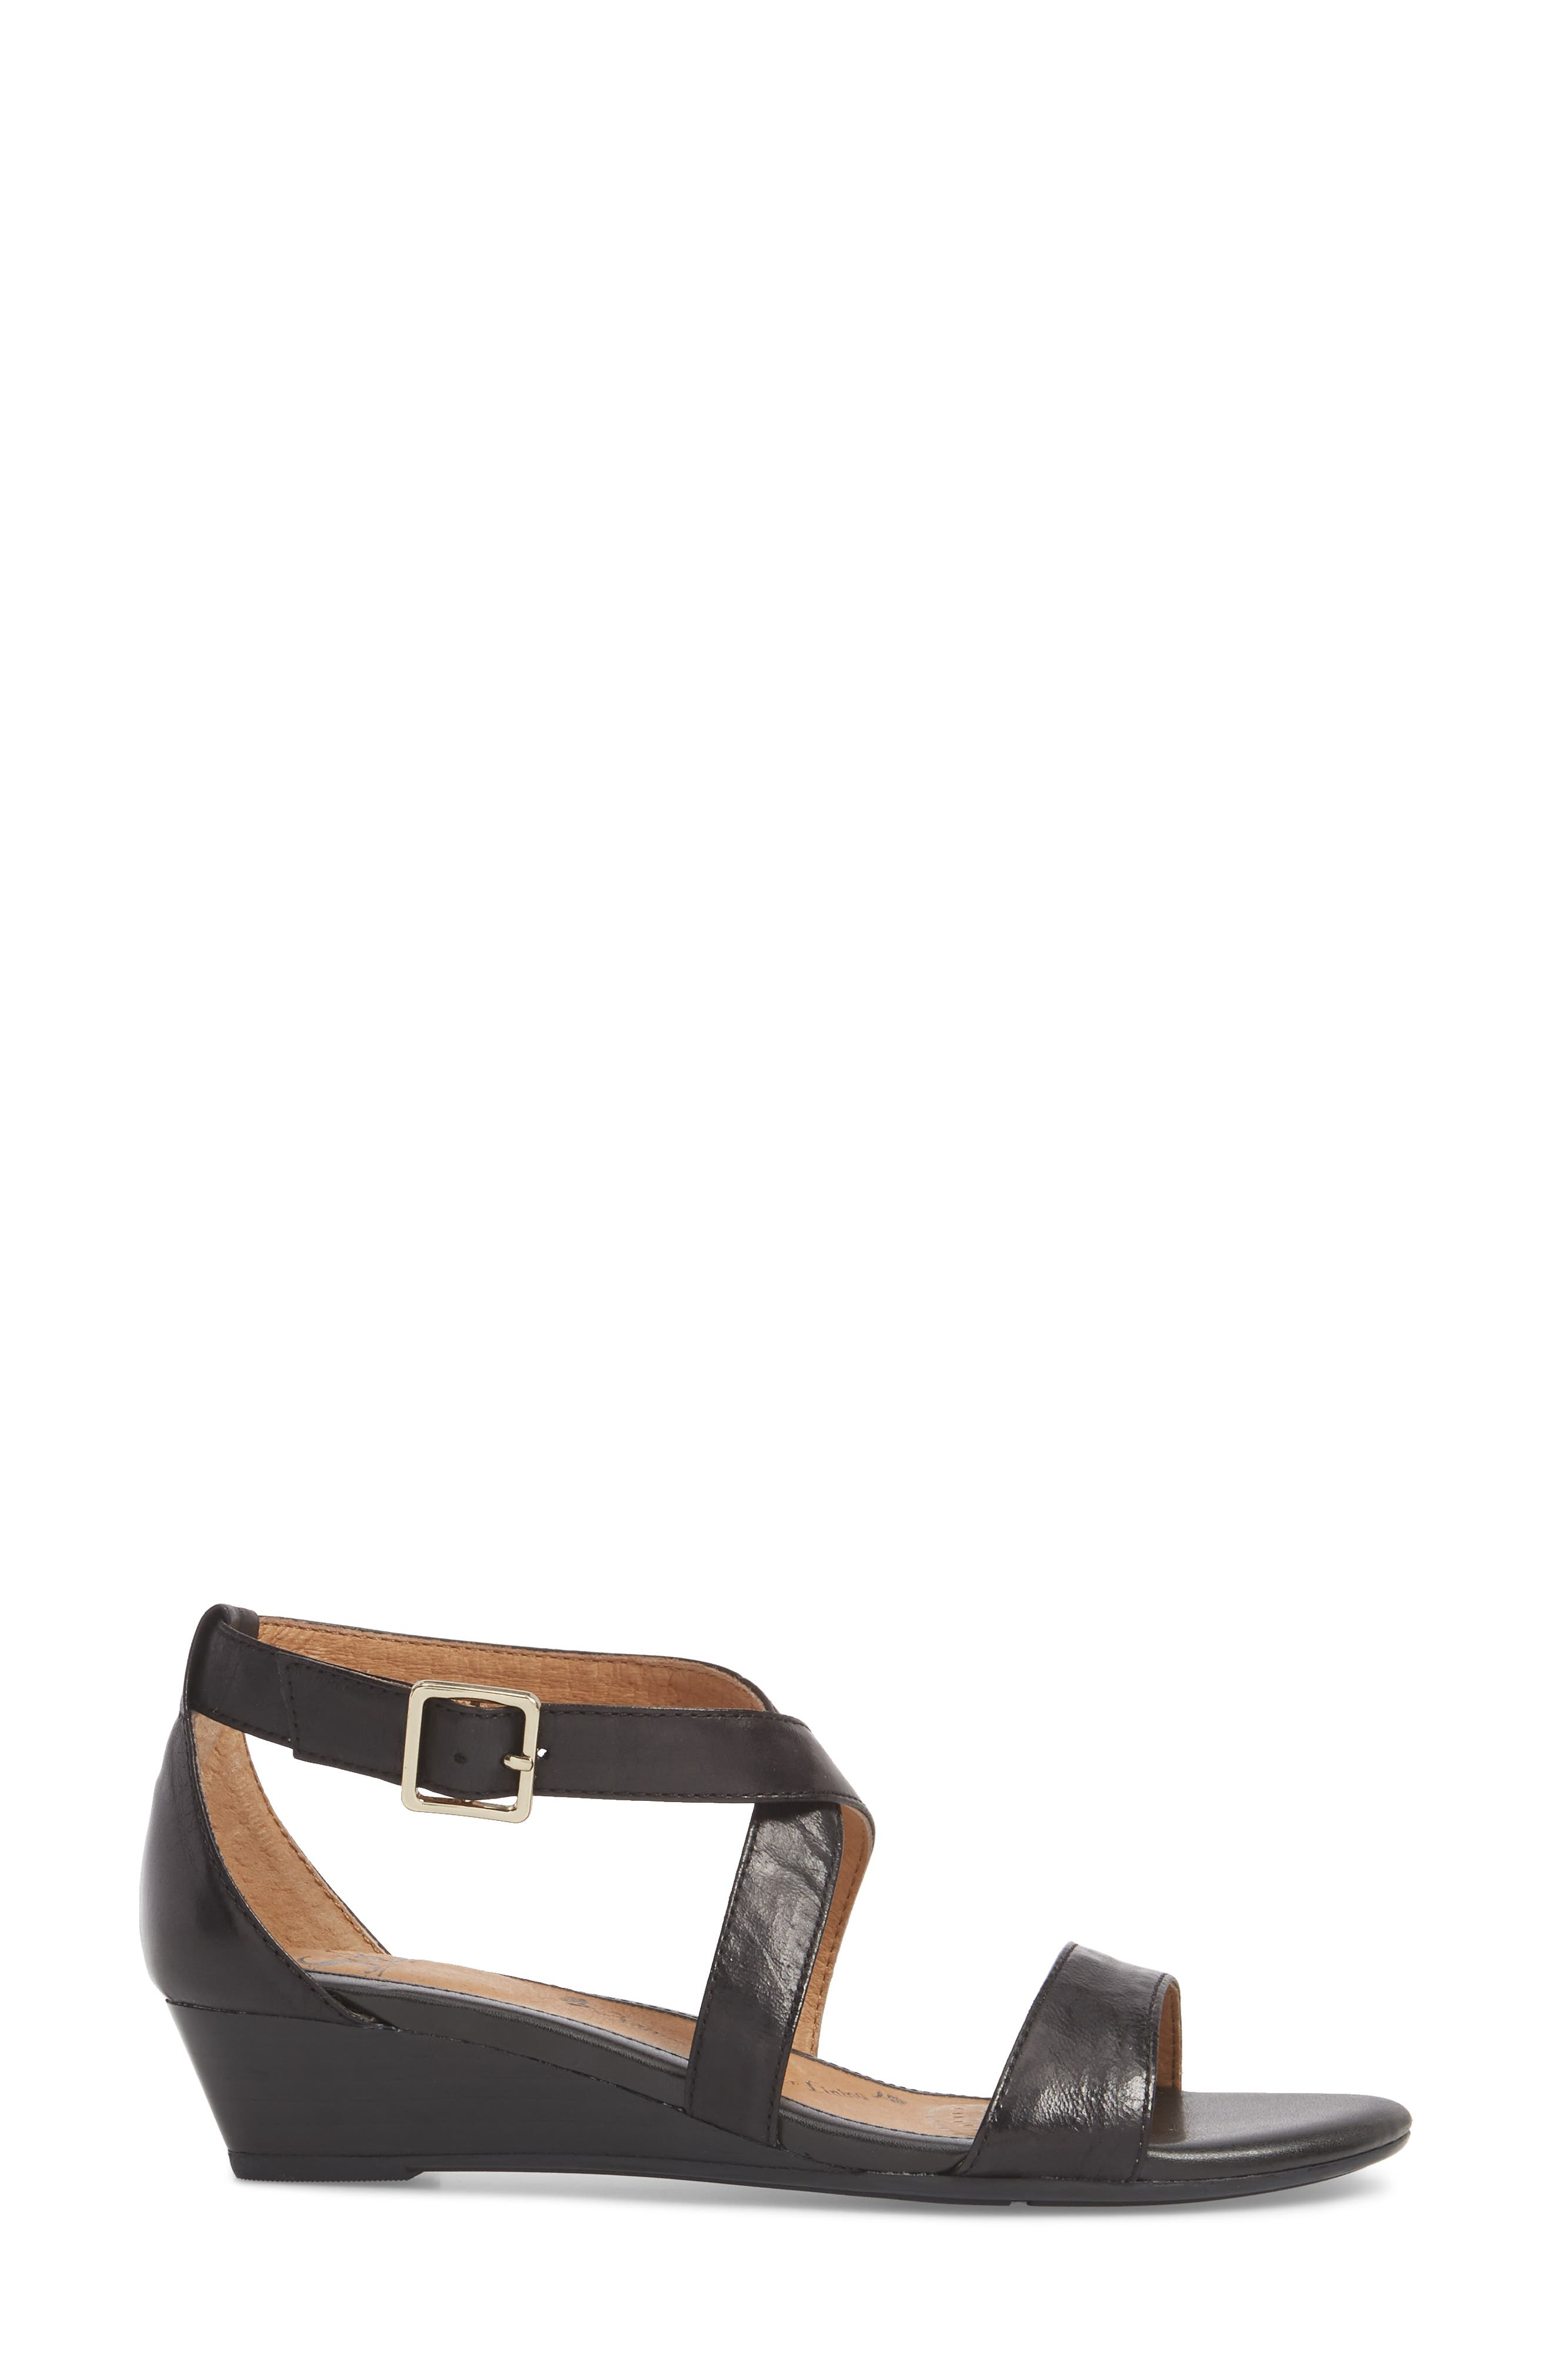 'Innis' Low Wedge Sandal,                             Alternate thumbnail 26, color,